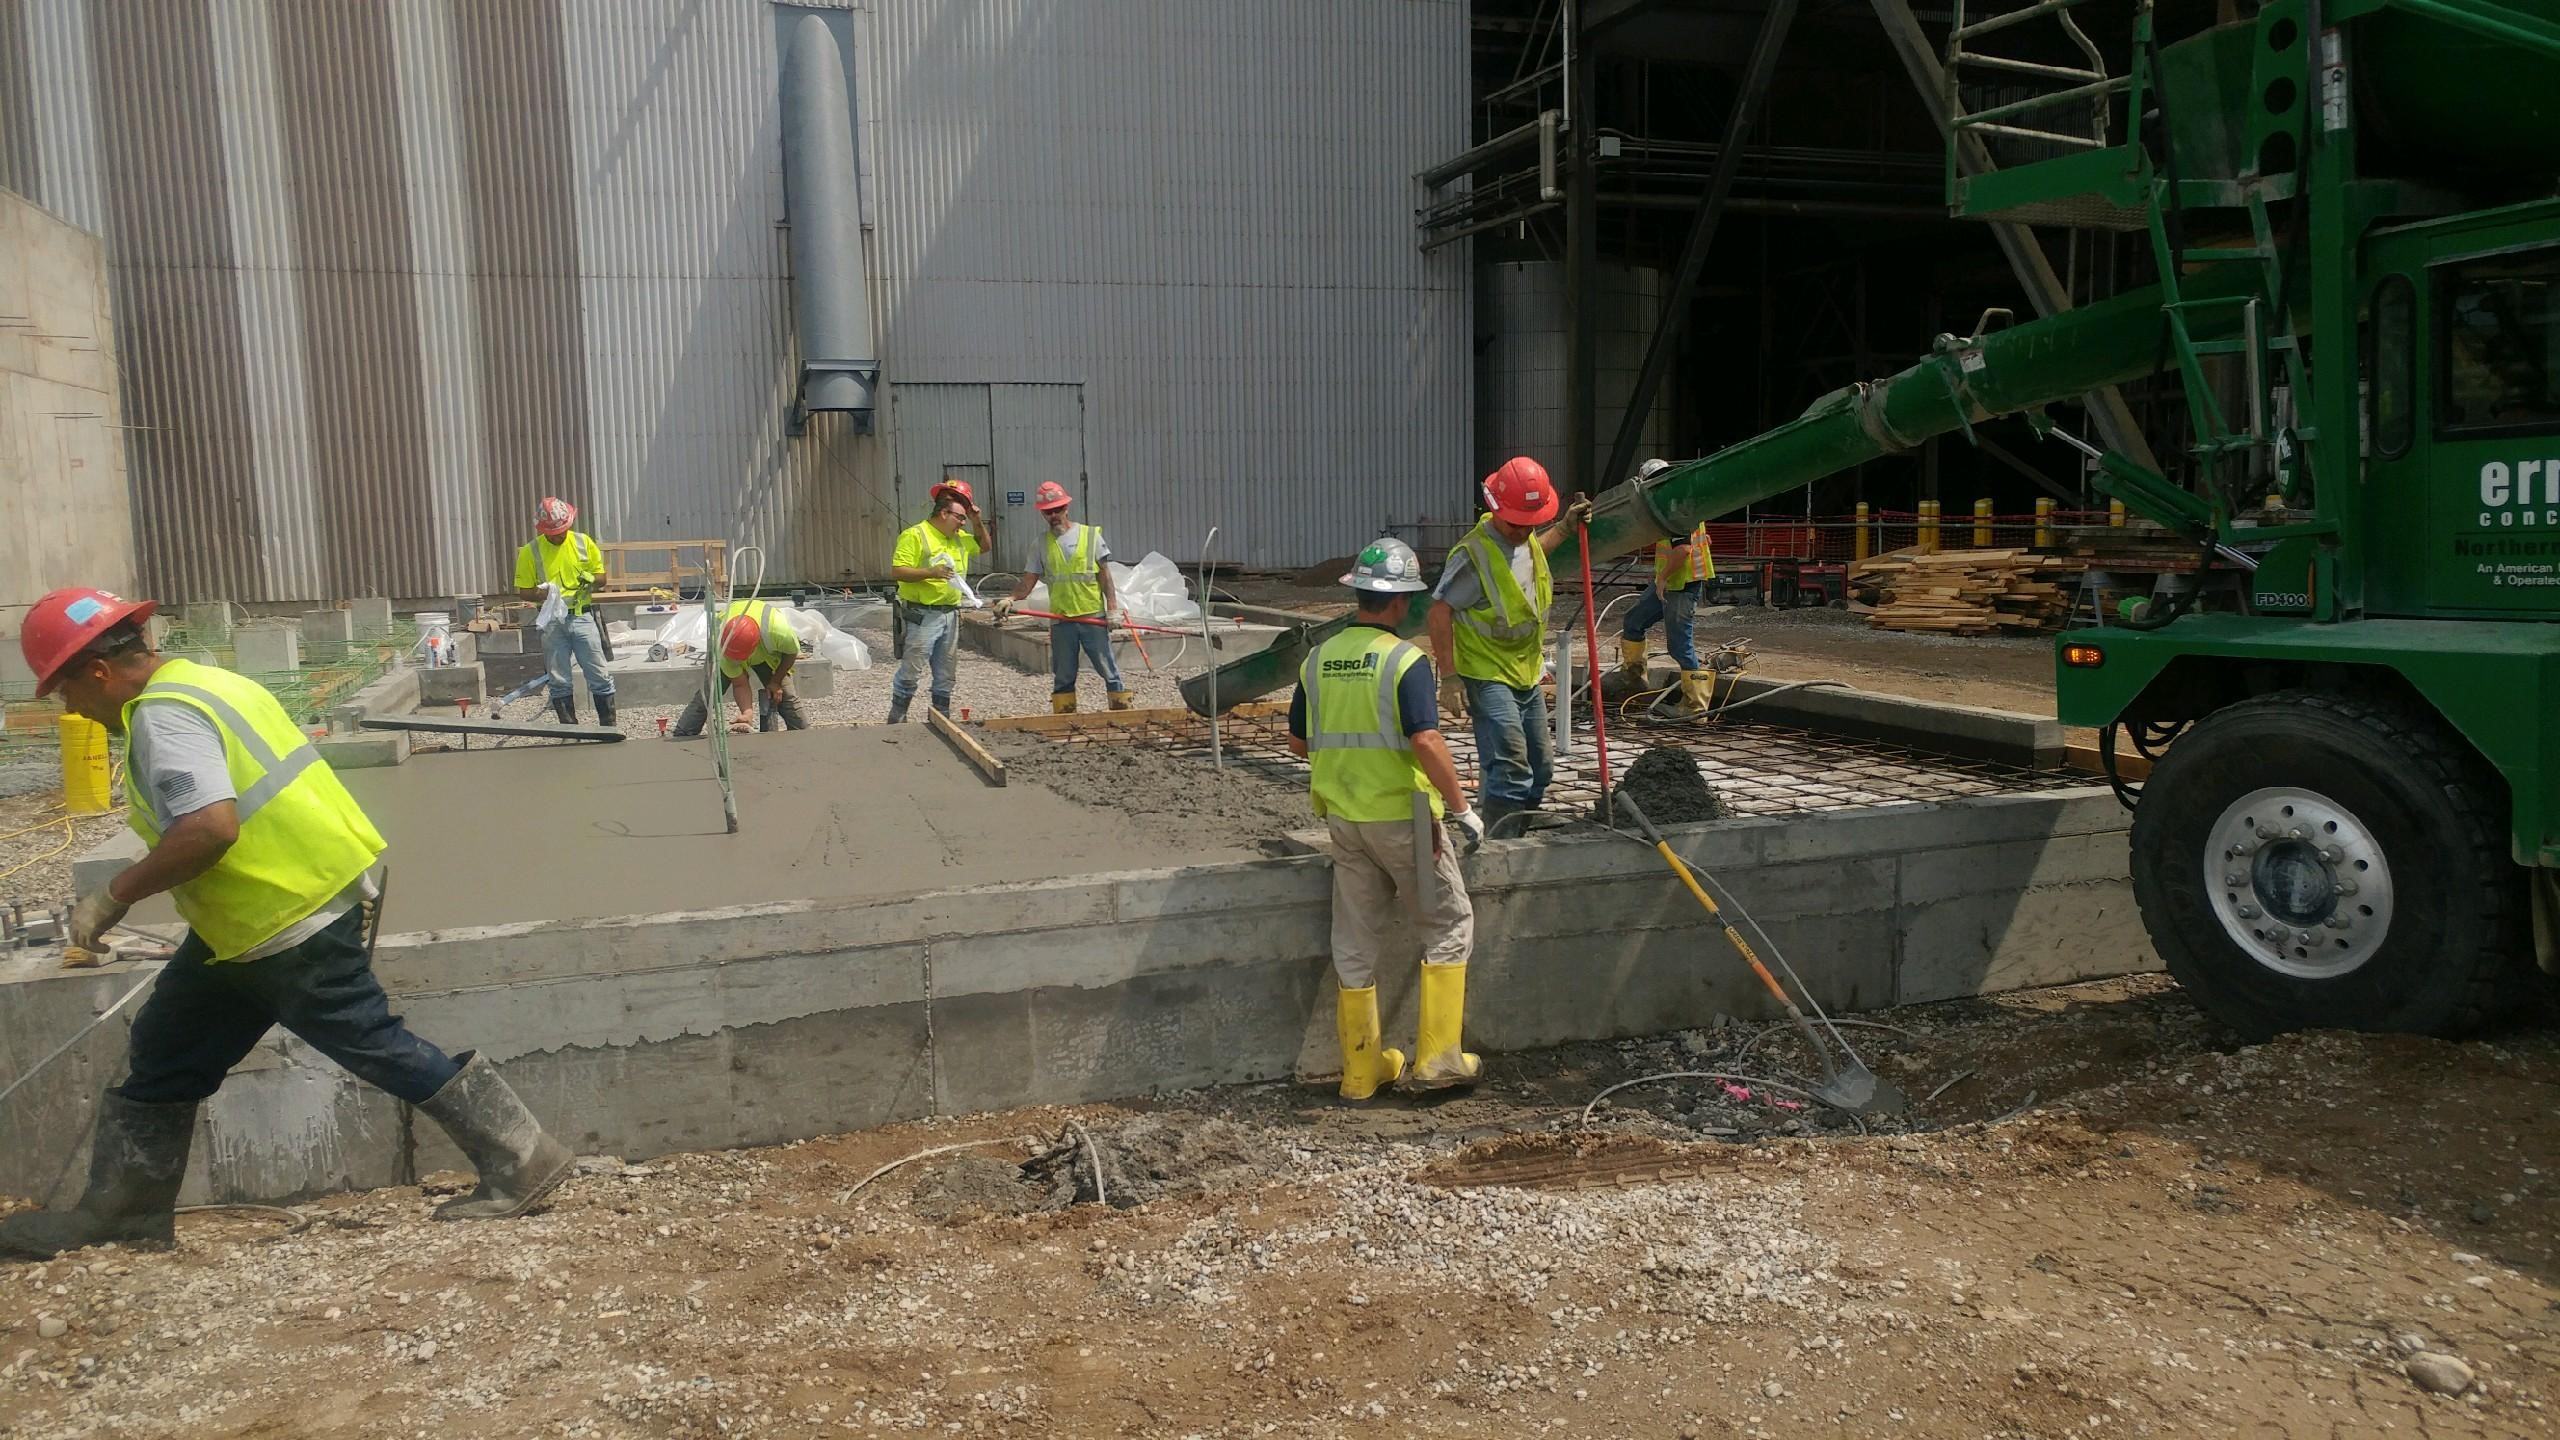 8 workers in high visibility vests spreading freely poured concrete with the green concrete truck on the right side of the photo